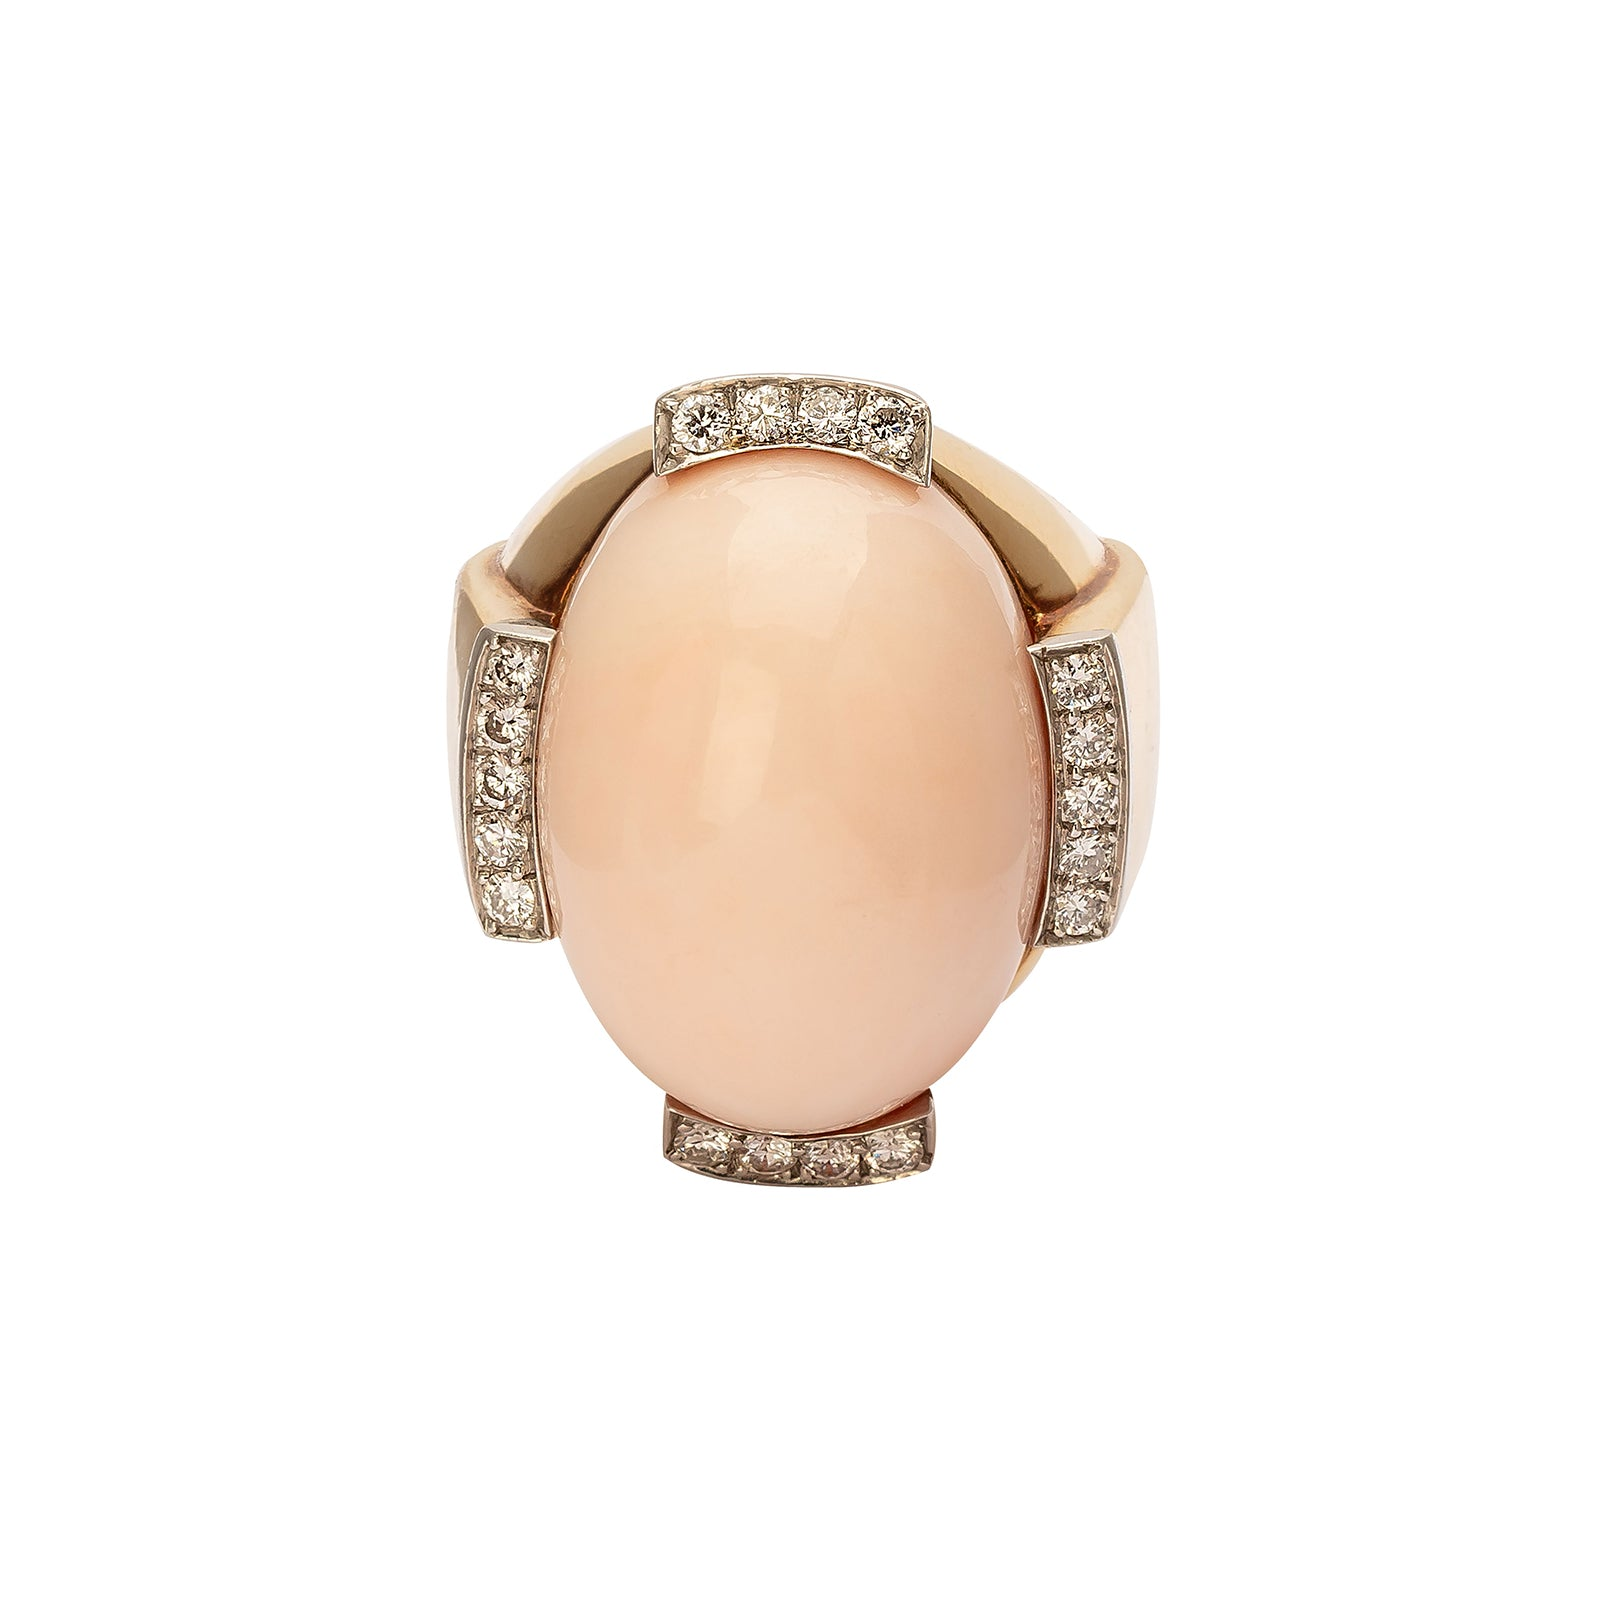 Antique & Vintage Jewelry David Webb Angel Skin Coral & Diamond Cocktail Ring - Rings - Broken English Jewelry